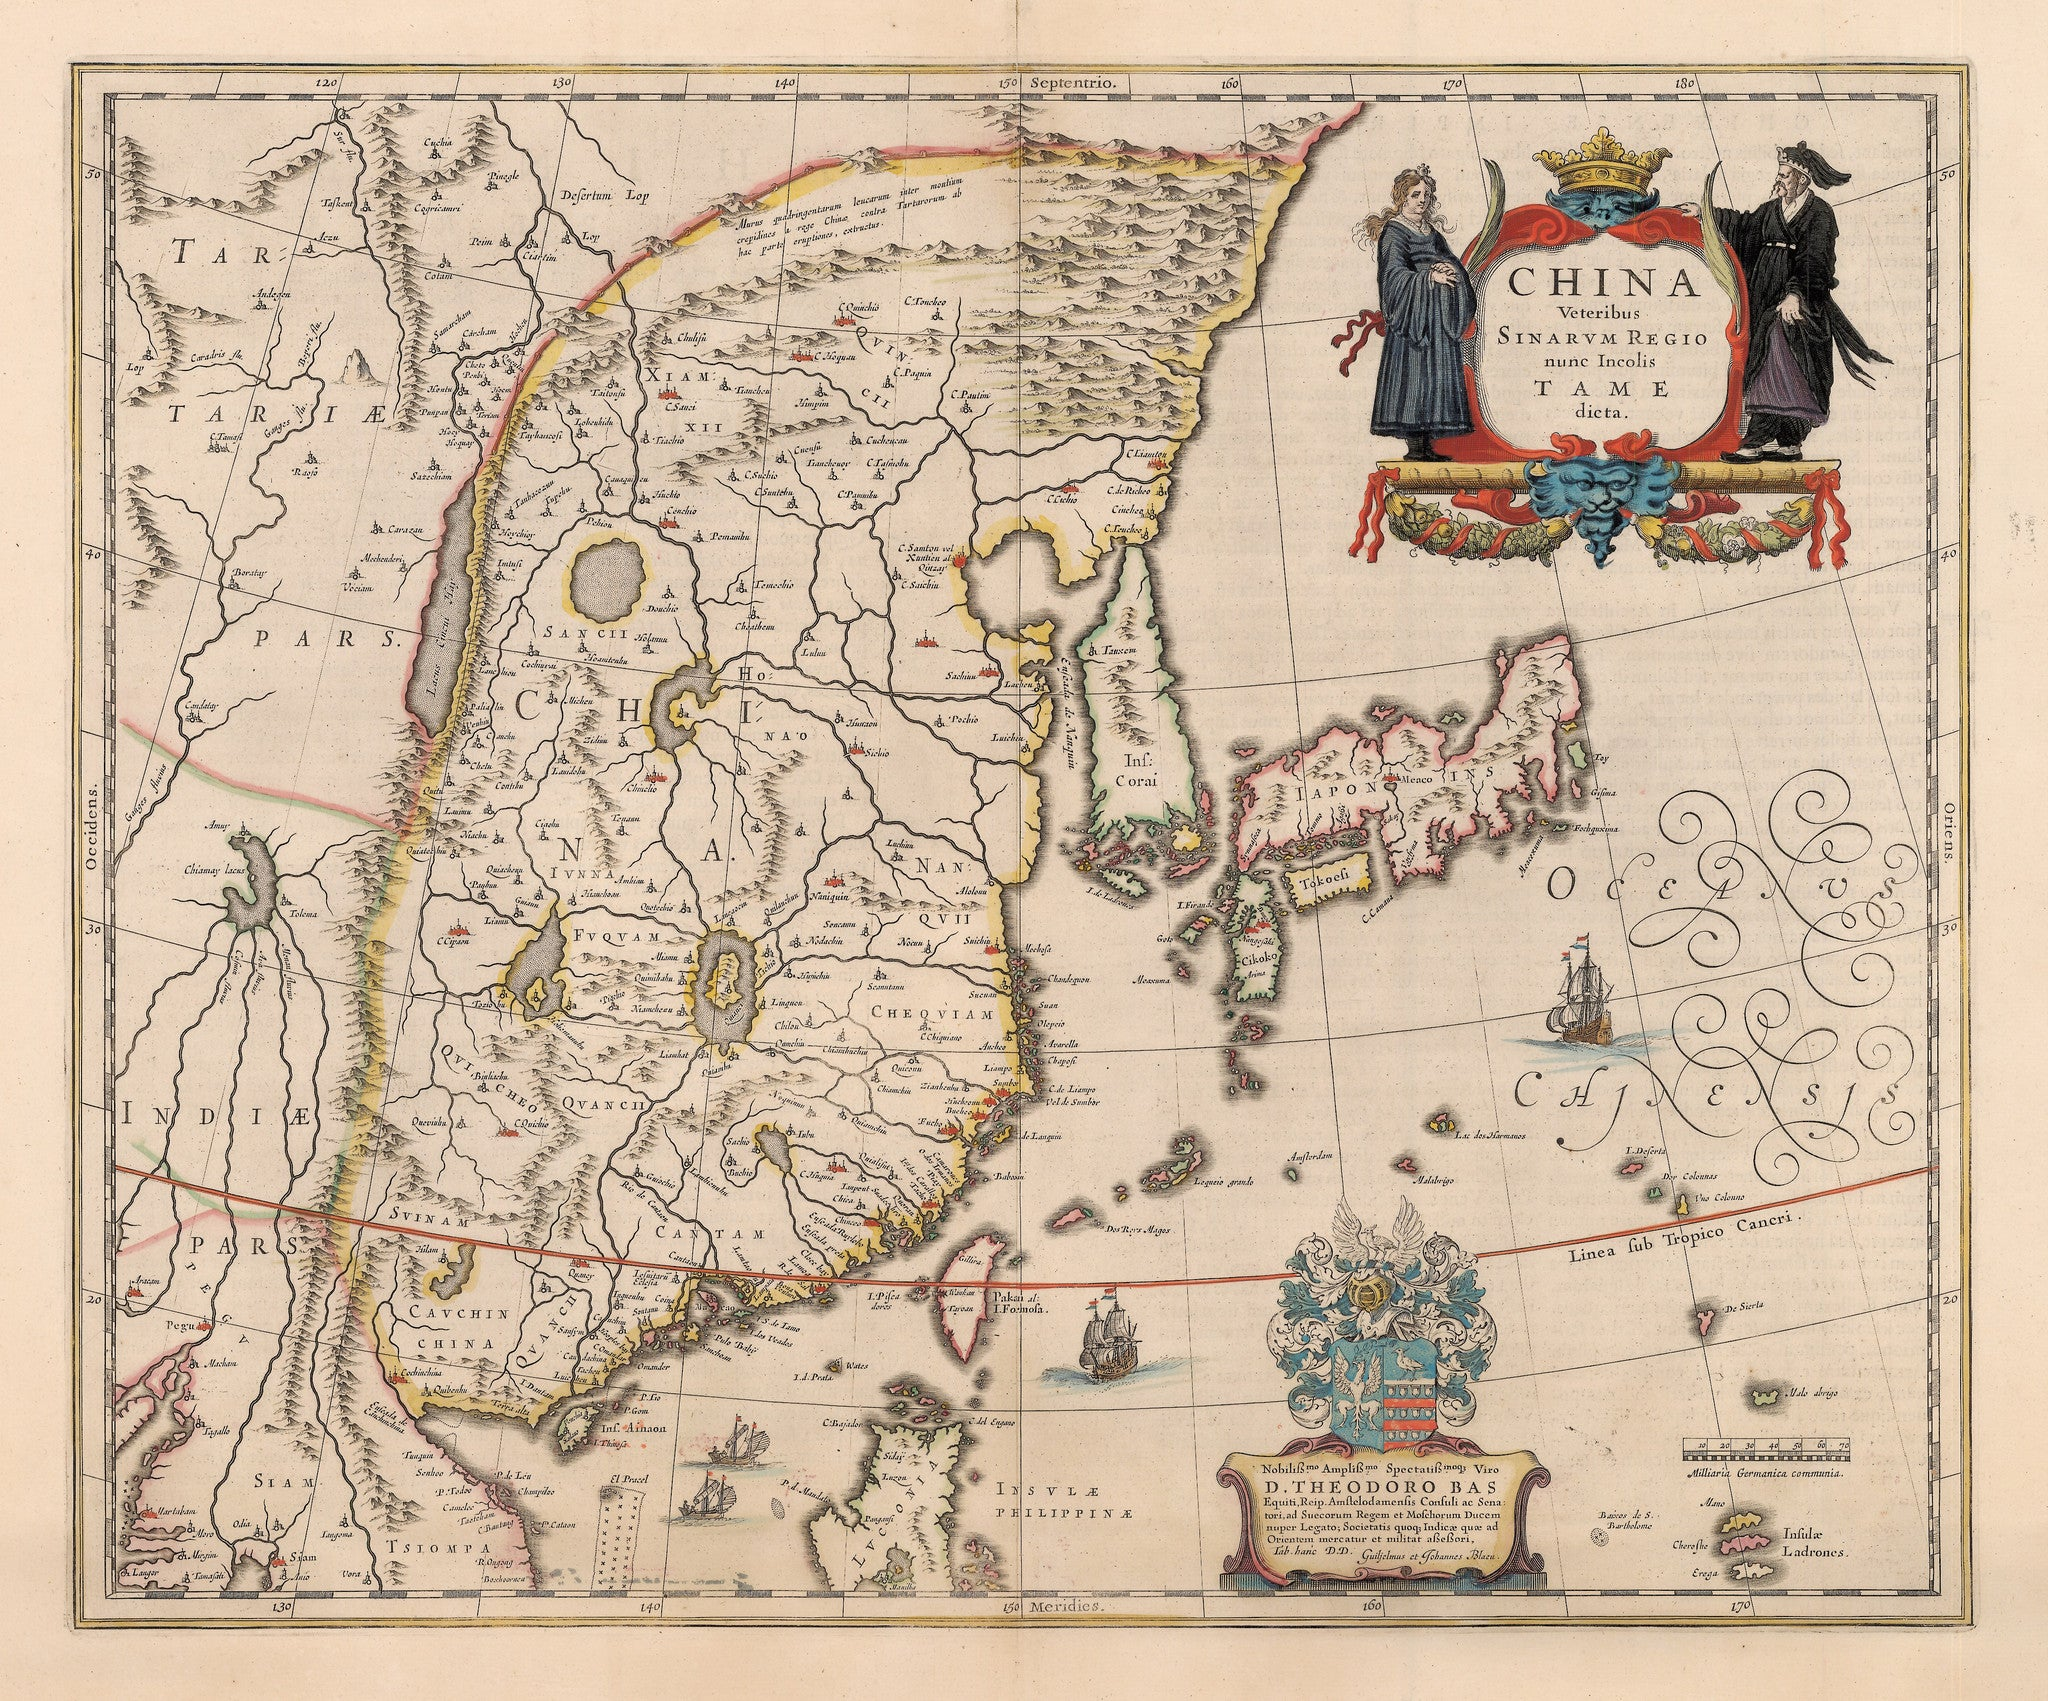 Authentic Antique Map: China Veteribus Sinarum Regio nunc Incolis Tame dieta.  By: Willem Johannes Blaeu  Date: 1640 (circa) Amsterdam